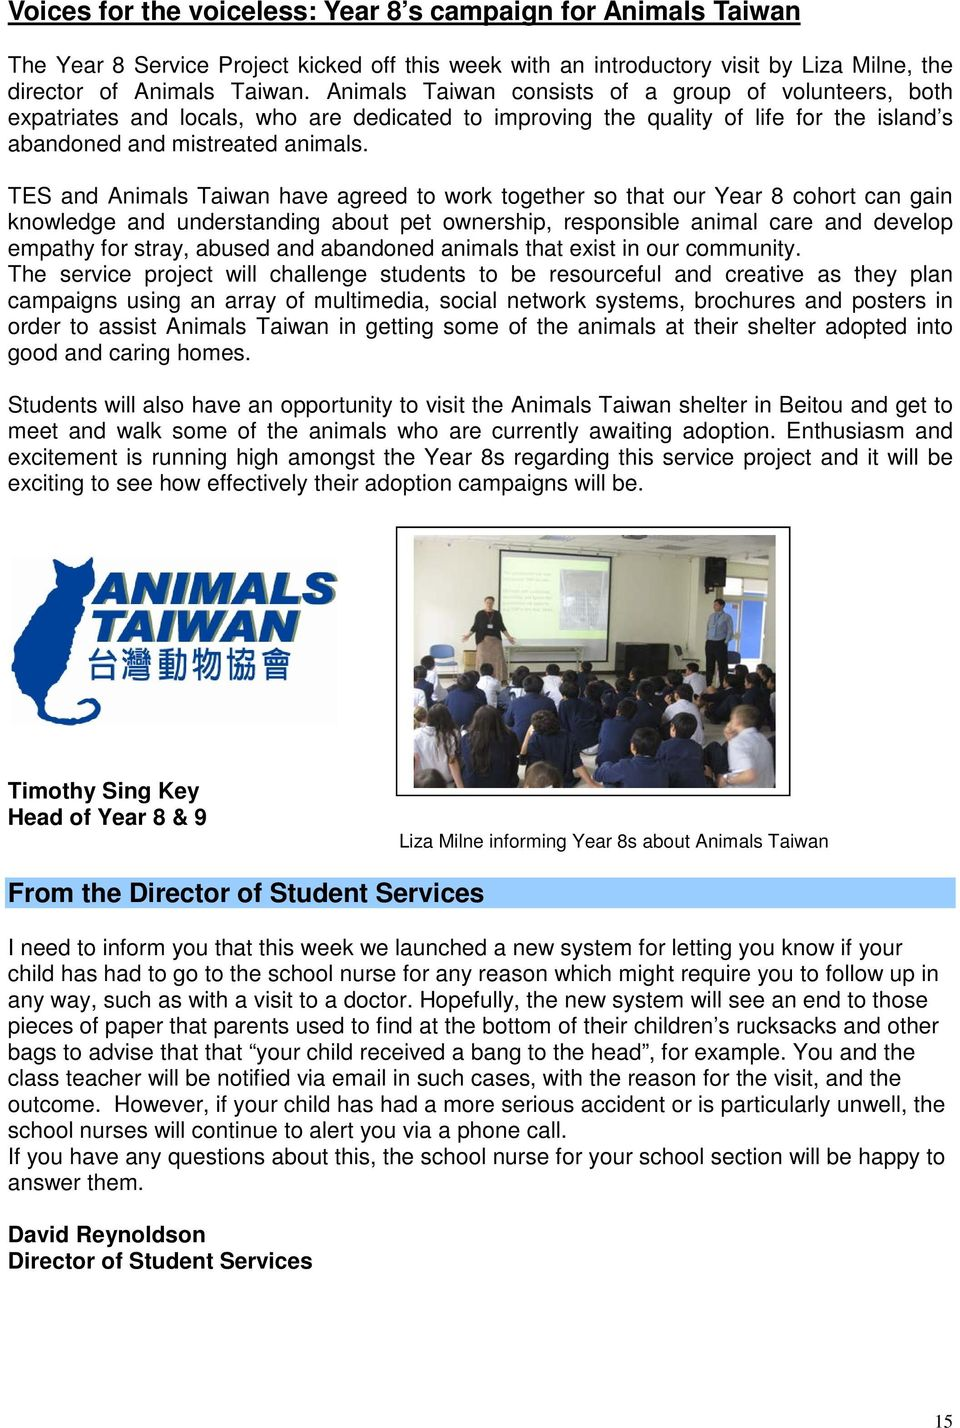 TES and Animals Taiwan have agreed to work together so that our Year 8 cohort can gain knowledge and understanding about pet ownership, responsible animal care and develop empathy for stray, abused